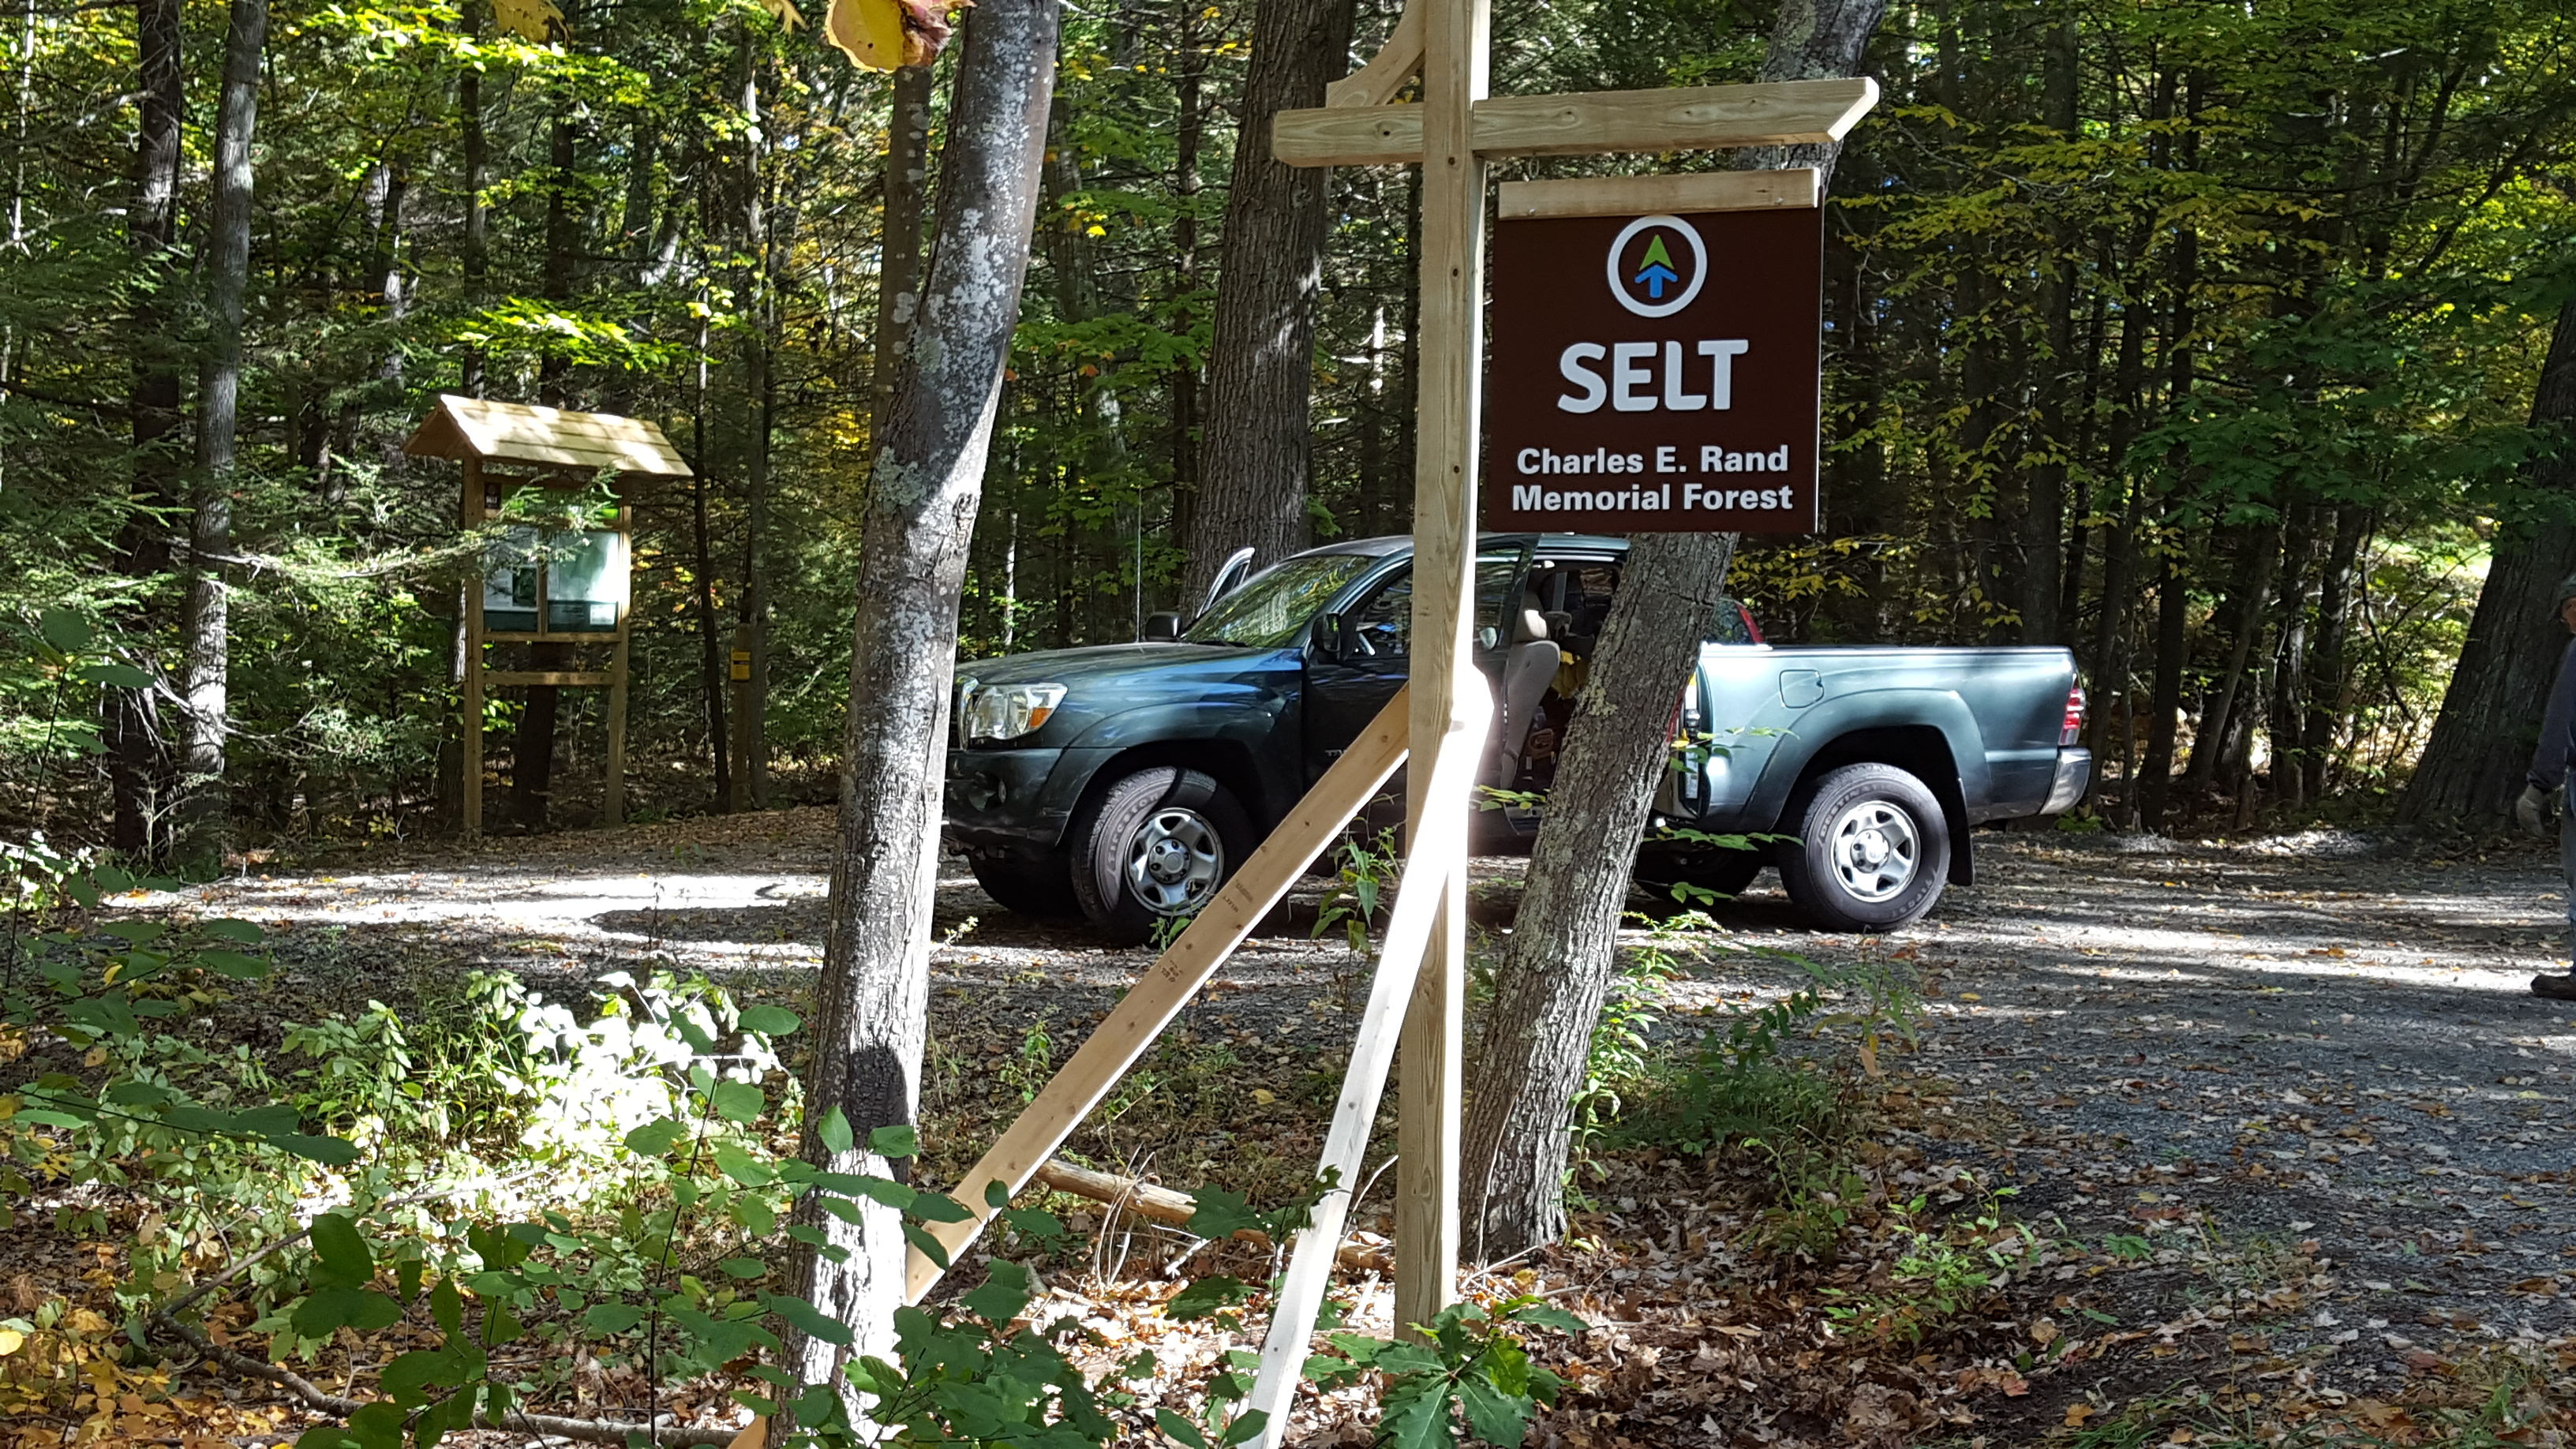 Grand Opening and Tour of the Charles E. Rand Memorial Forest